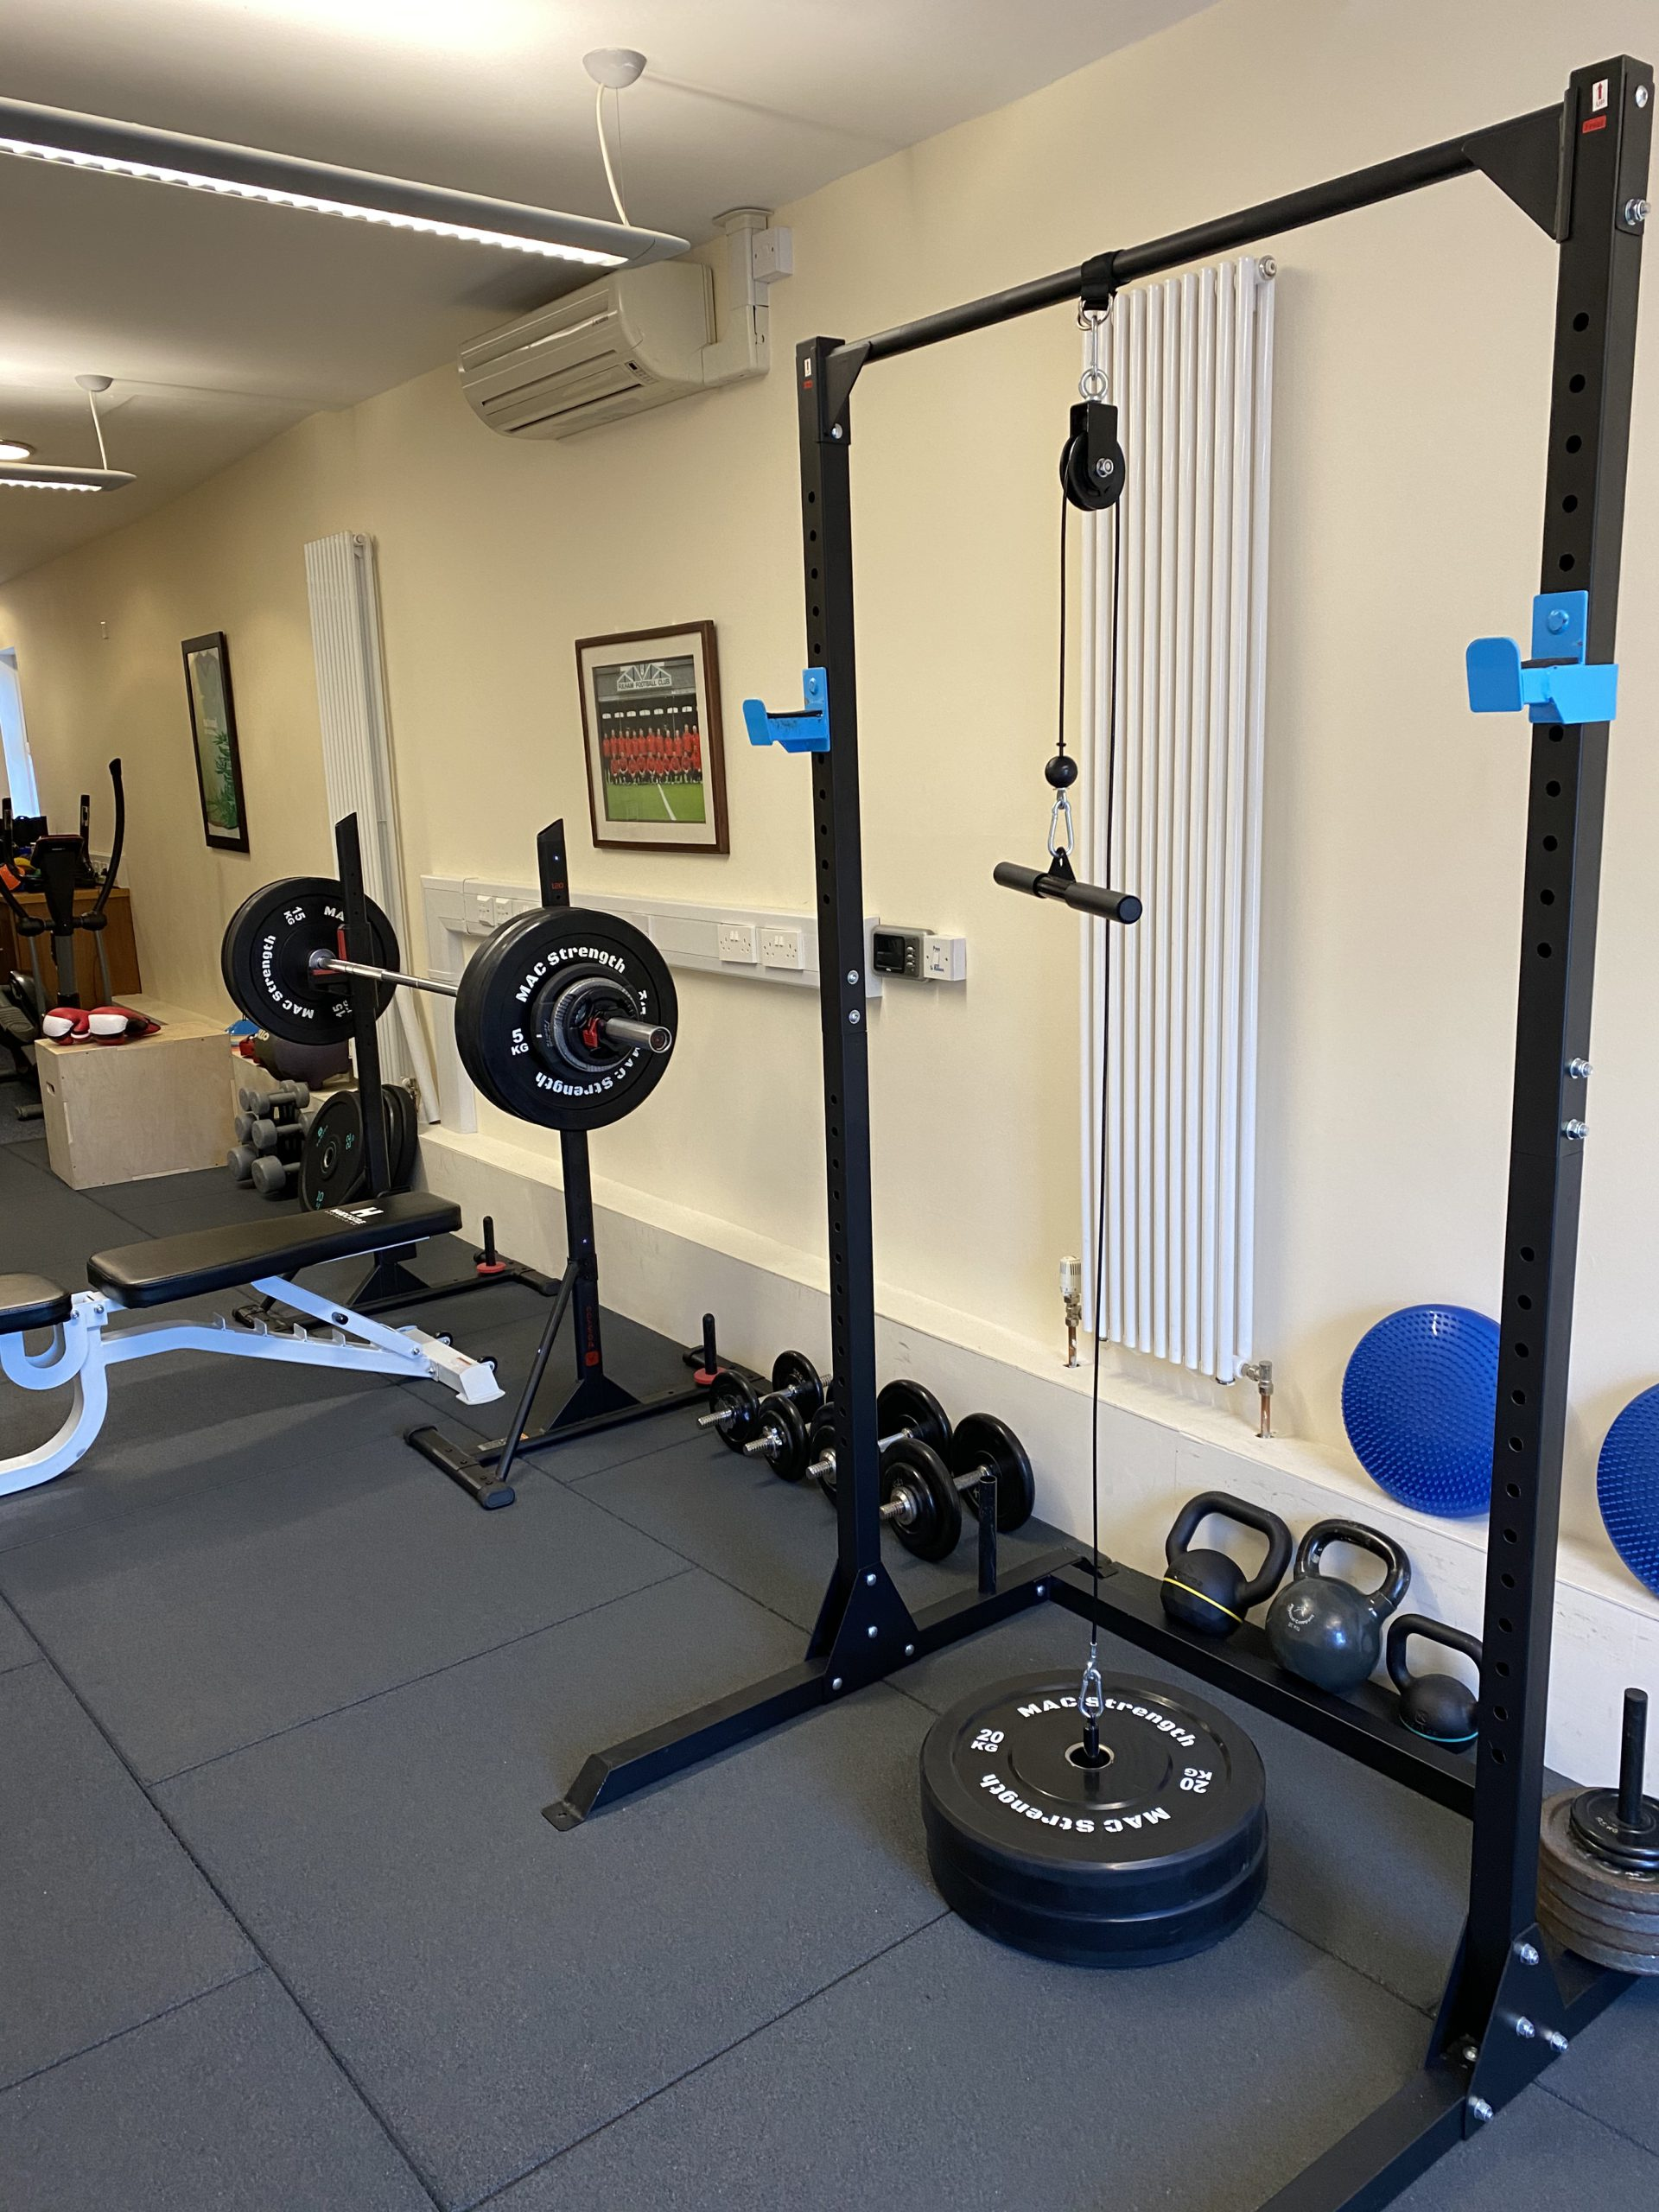 Gym loose weights area